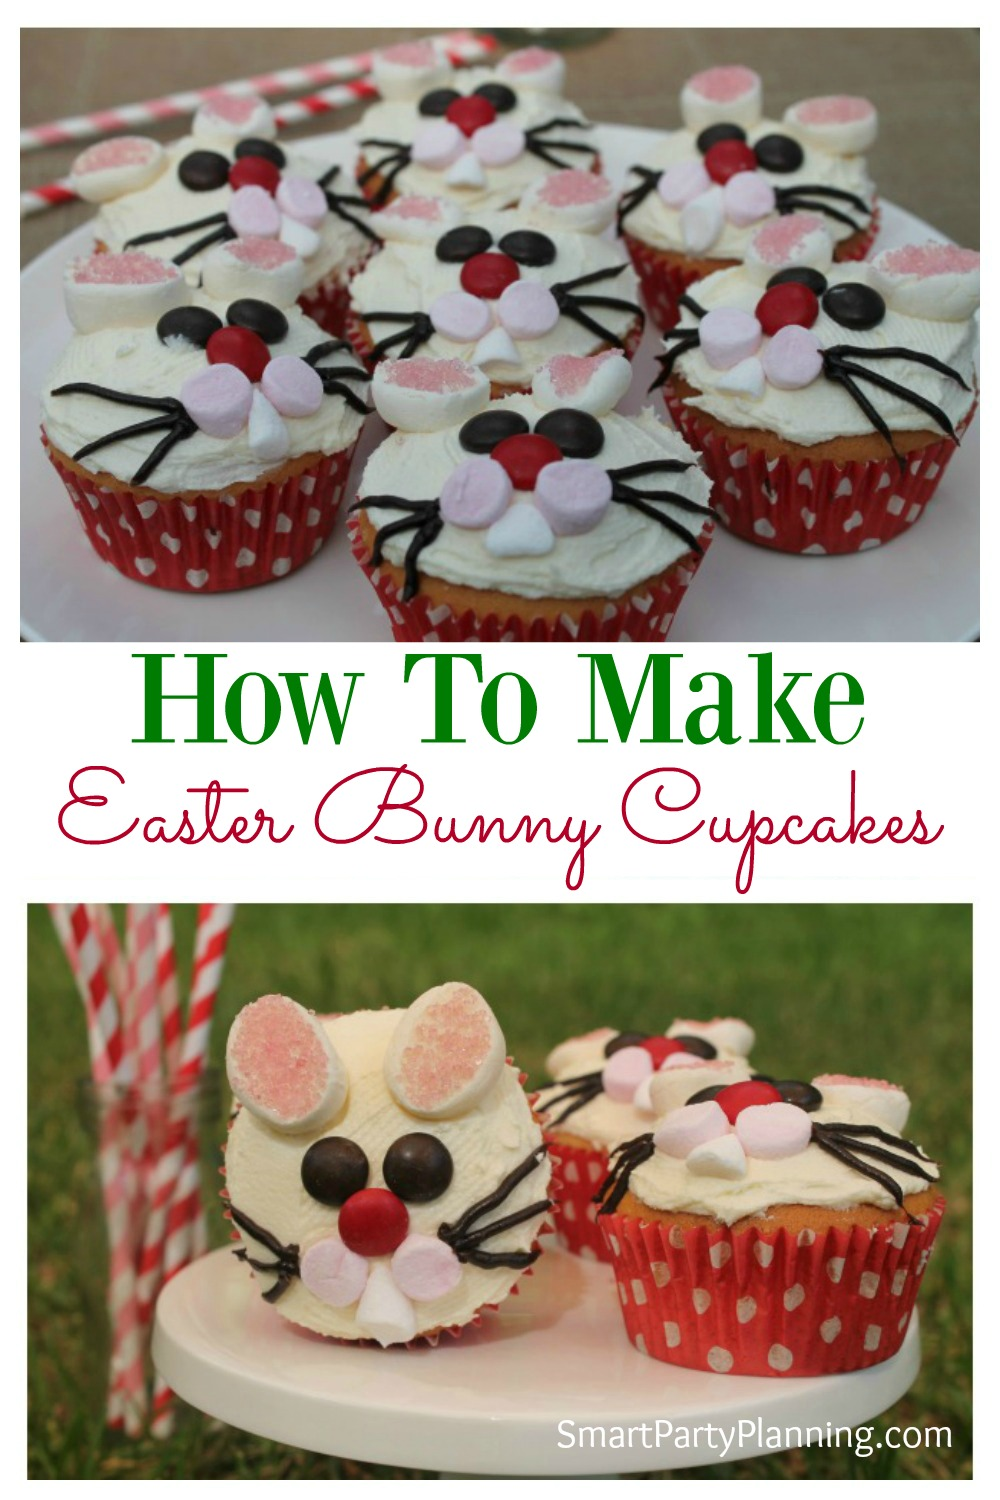 Easter bunny cupcakes are incredibly easy to make and they look fantastic. Follow this simple step by step tutorial and make these cheeky bunny cupcakes with the kids.  If you are looking for an easy dessert that the whole family will love, then this one is for you.  So fun! #Easter #Bunnycupcakes #Bakingwithkids